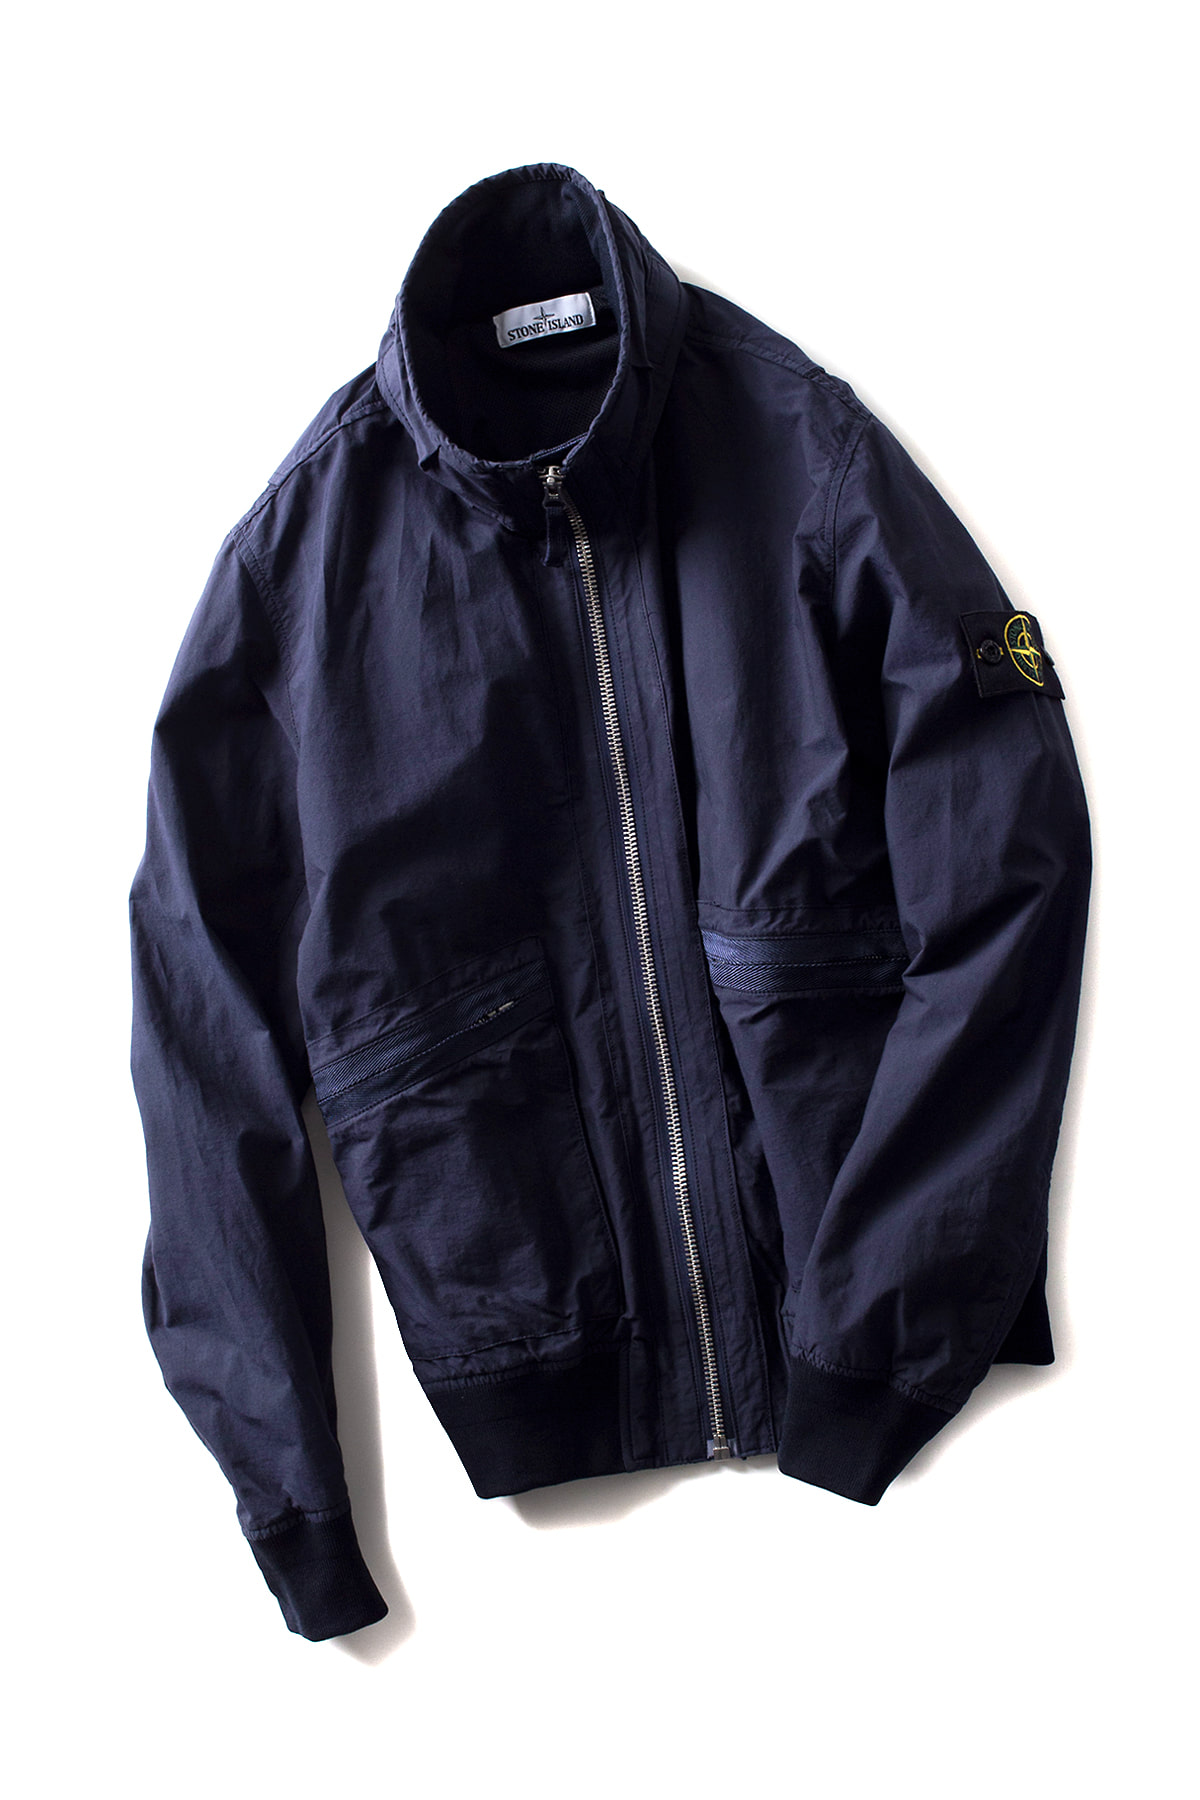 Stone Island : LIGHT COTTON NYLON TWILL BLOUSON (Dark Blue)